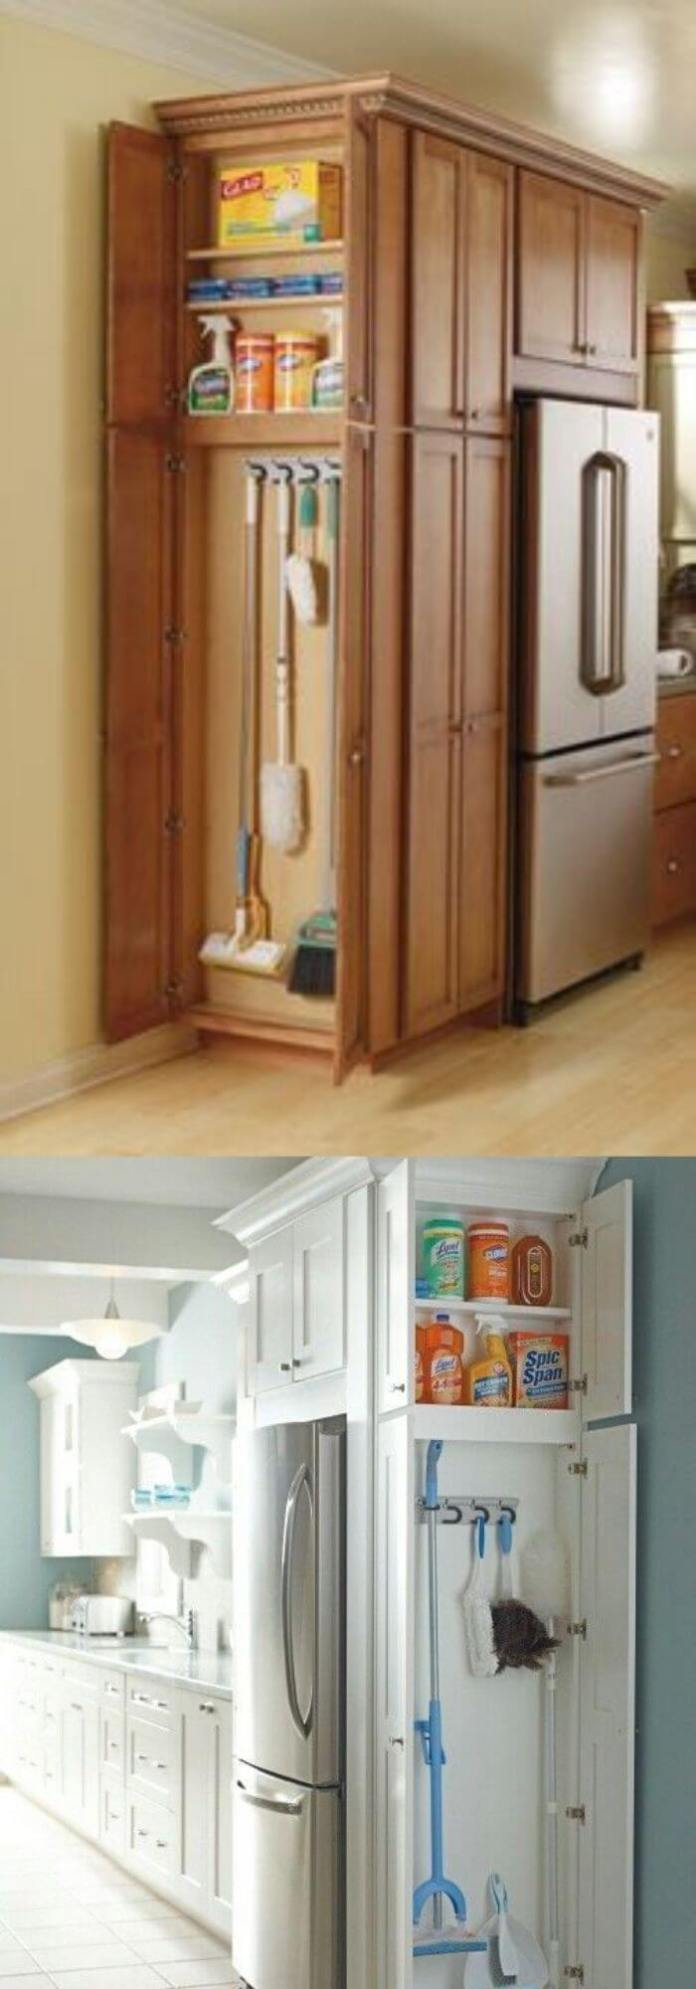 24 Clever Small Kitchen Storage Ideas Hacks Easy In 2021